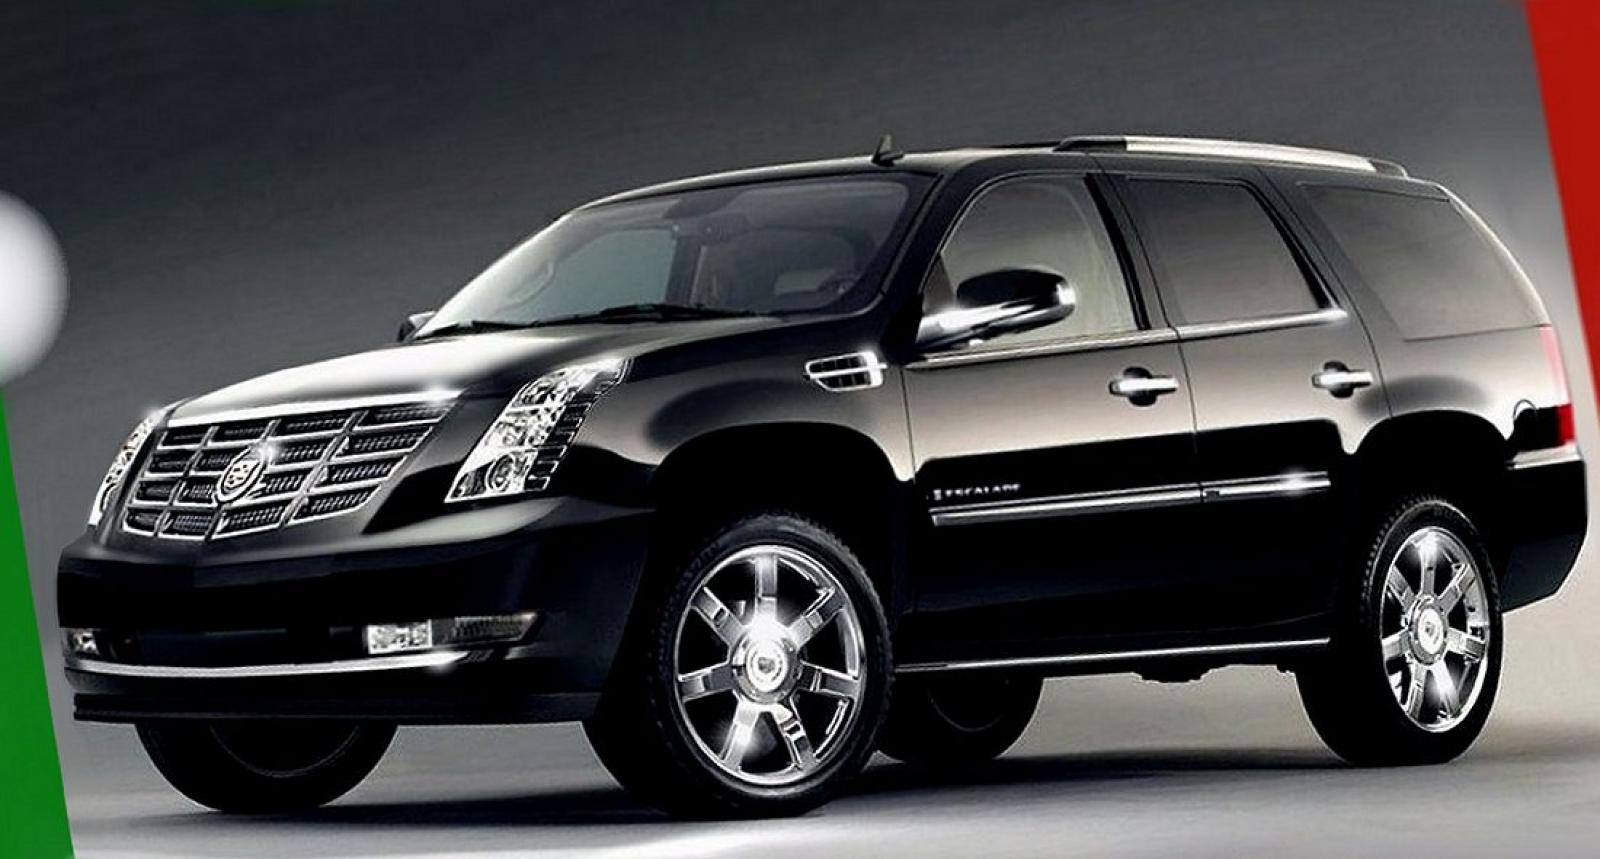 800 1024 1280 1600 origin 2014 cadillac escalade